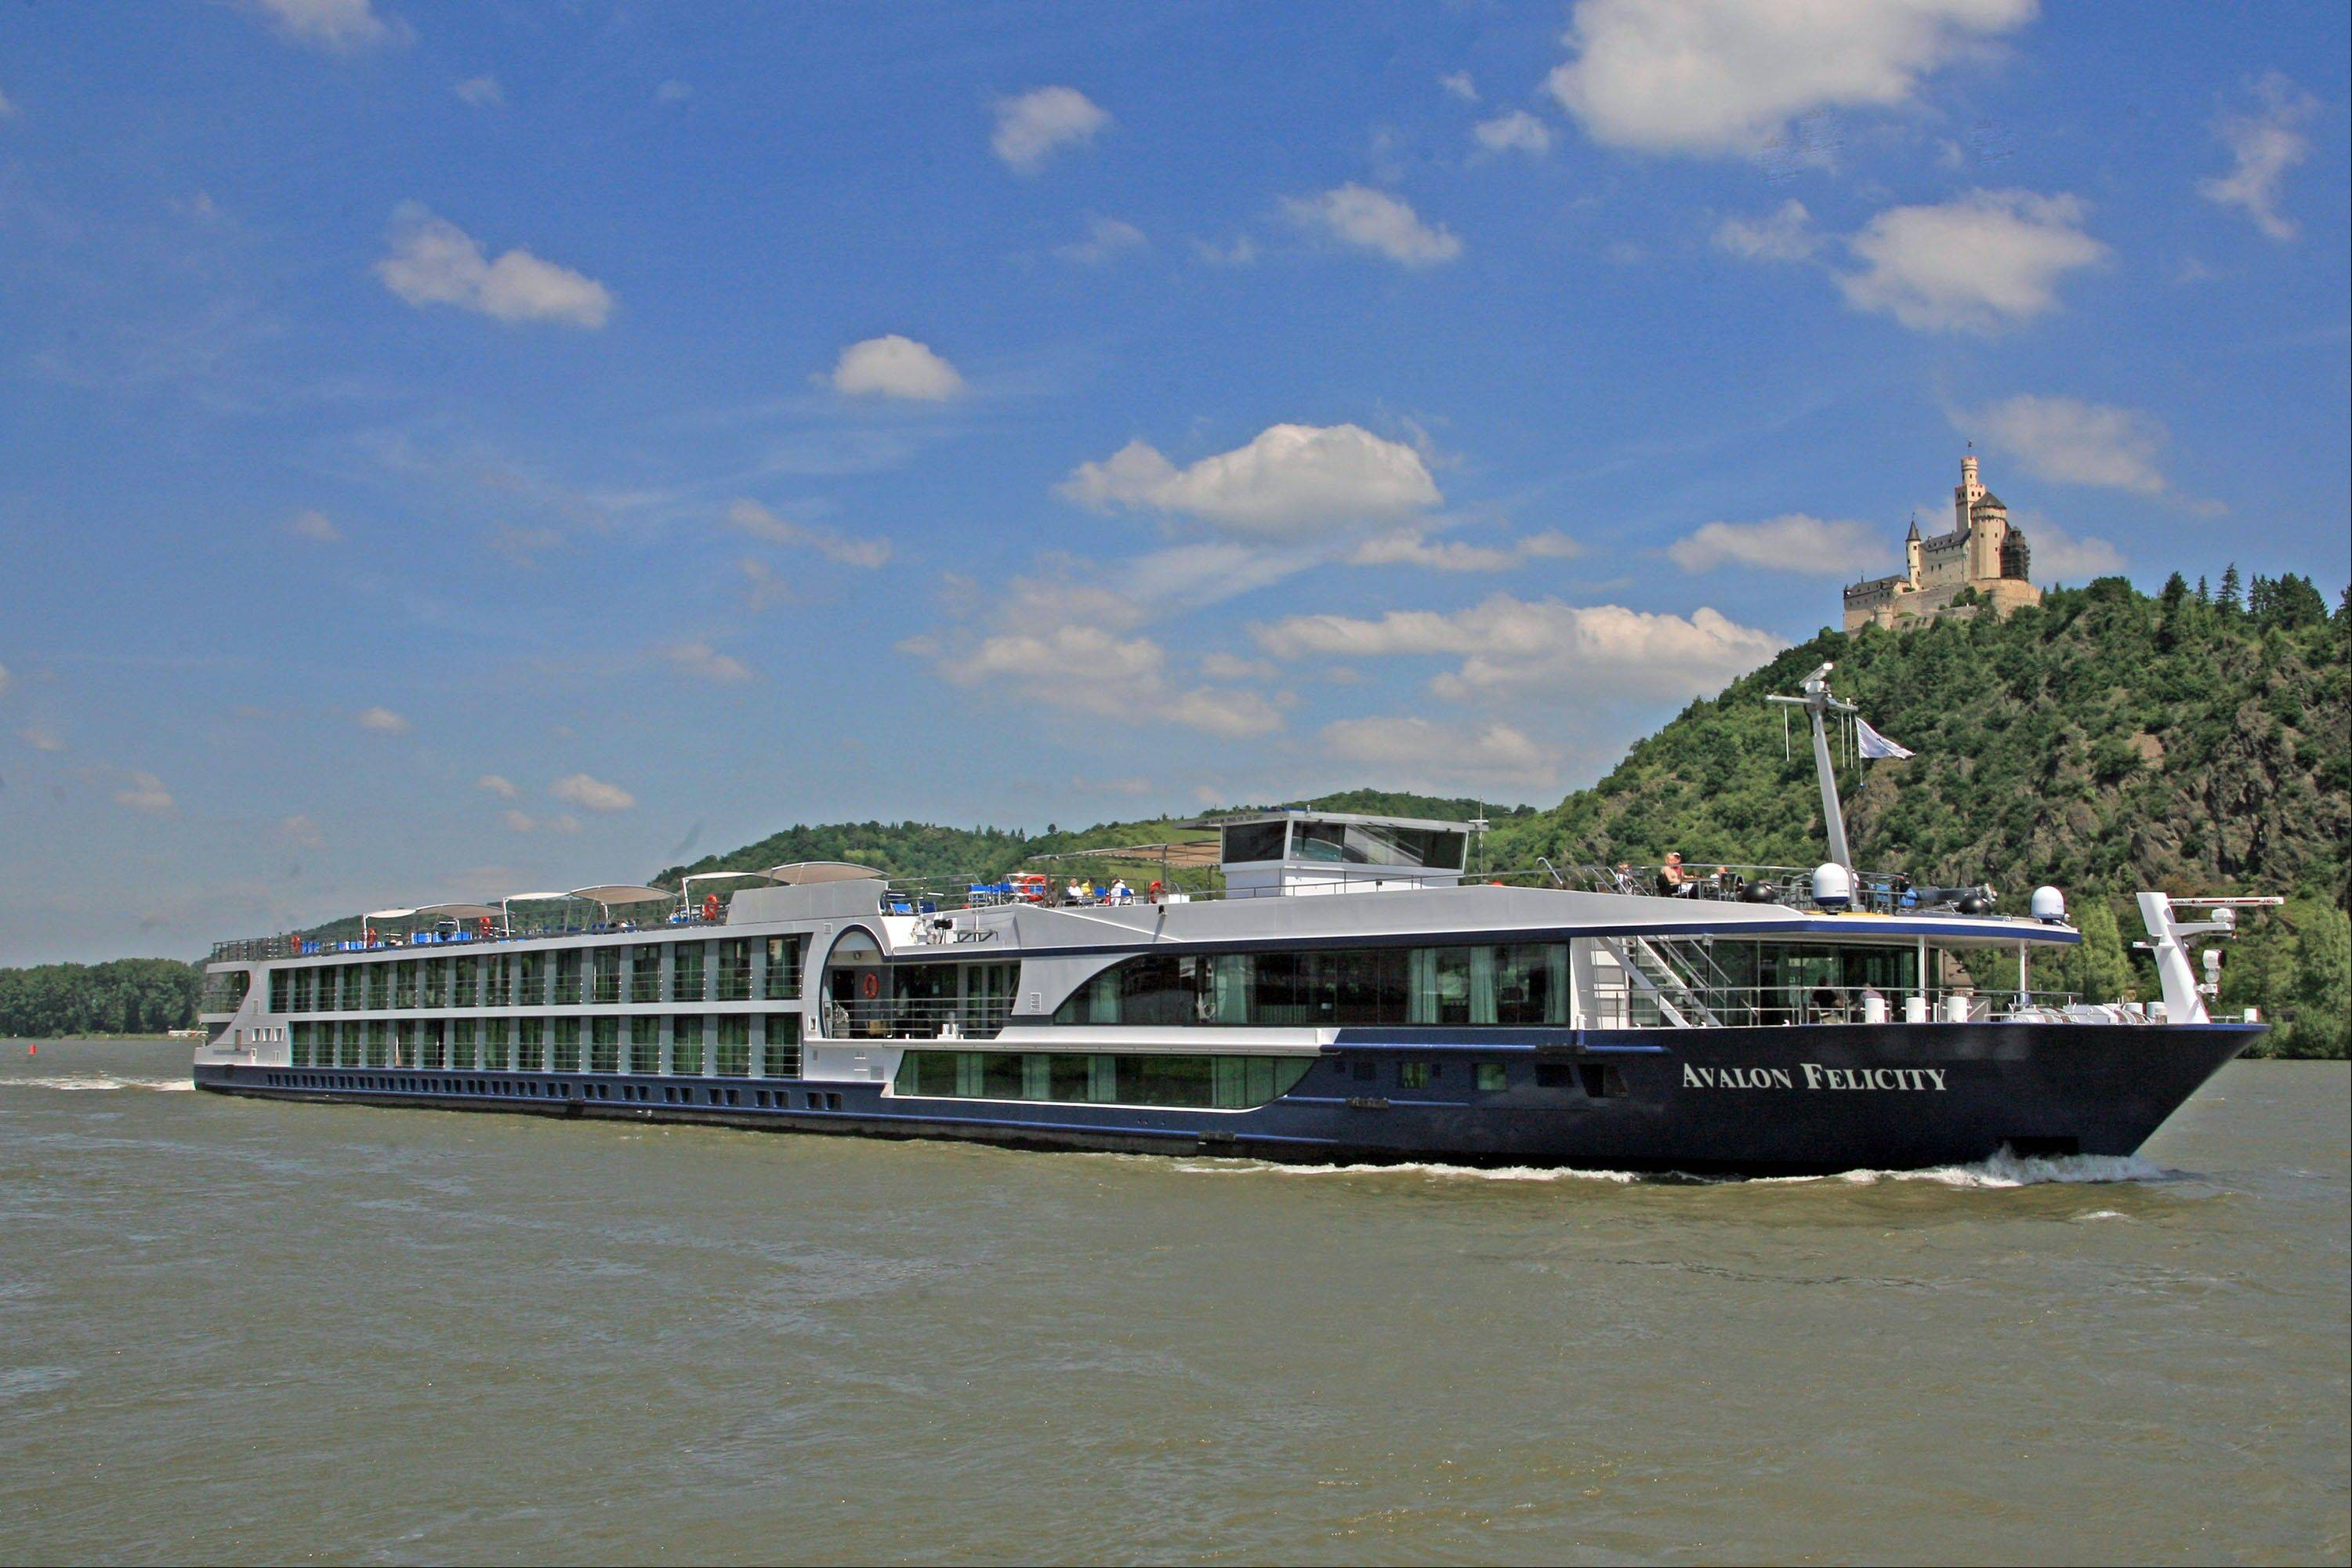 The river ship Avalon Felicity passes a castle on the Rhine River in Marksburg, Germany.